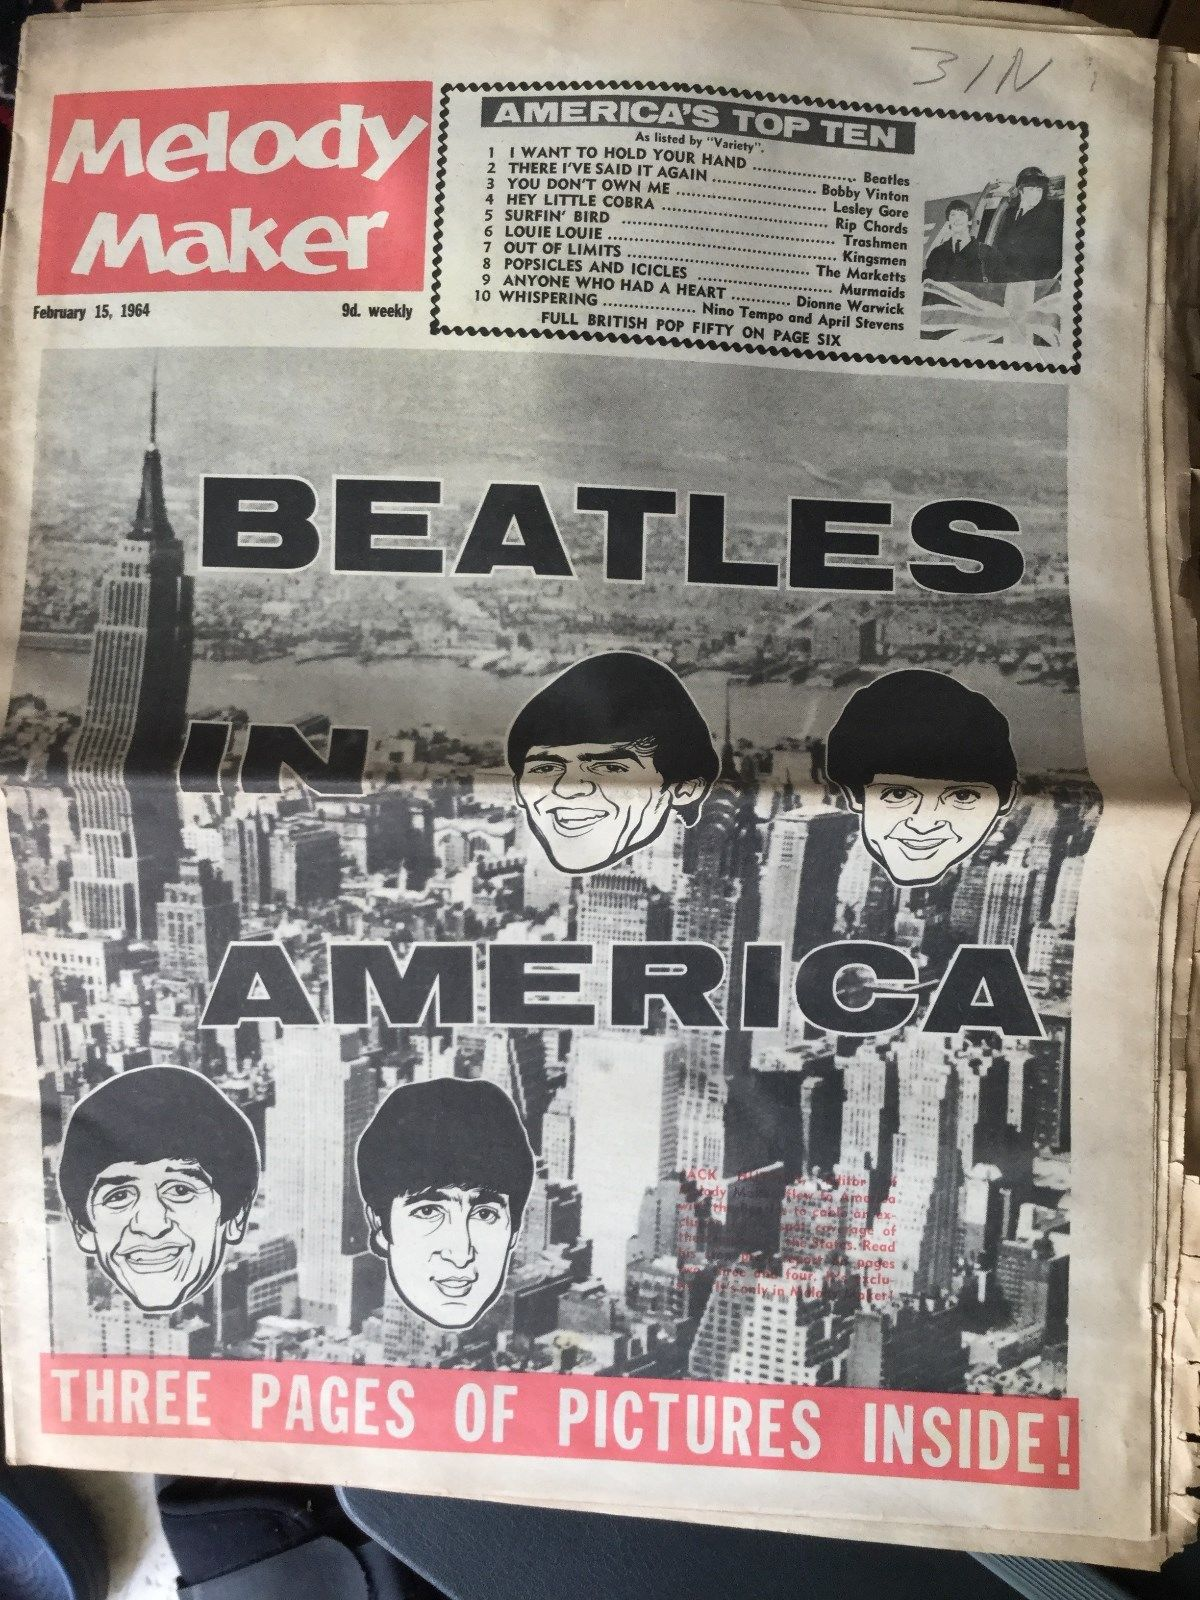 The Beatles in America, February 1964